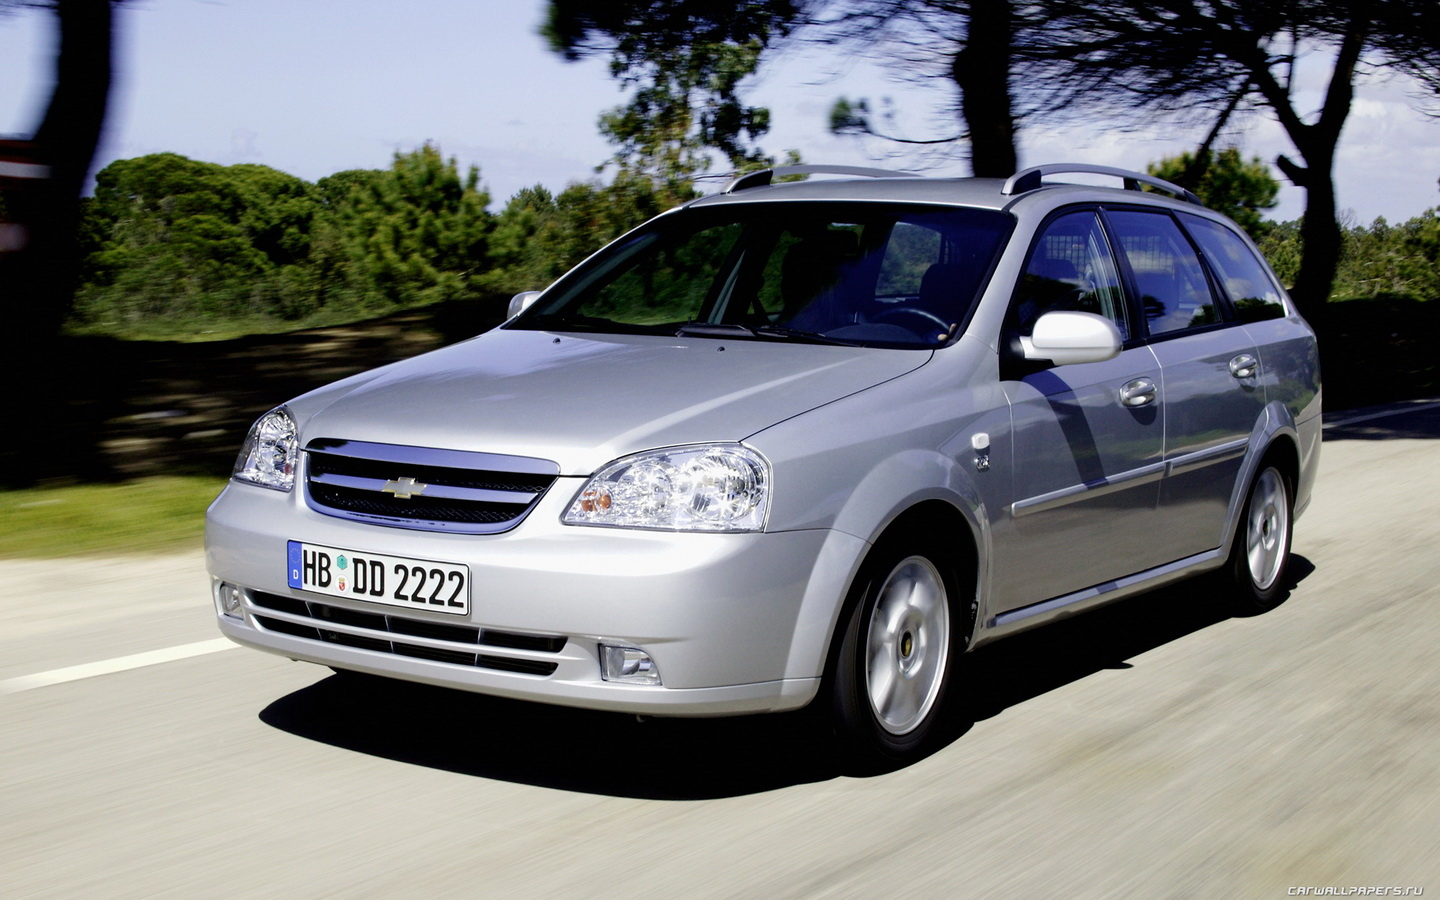 chevrolet nubira station wagon 2014 pictures #7